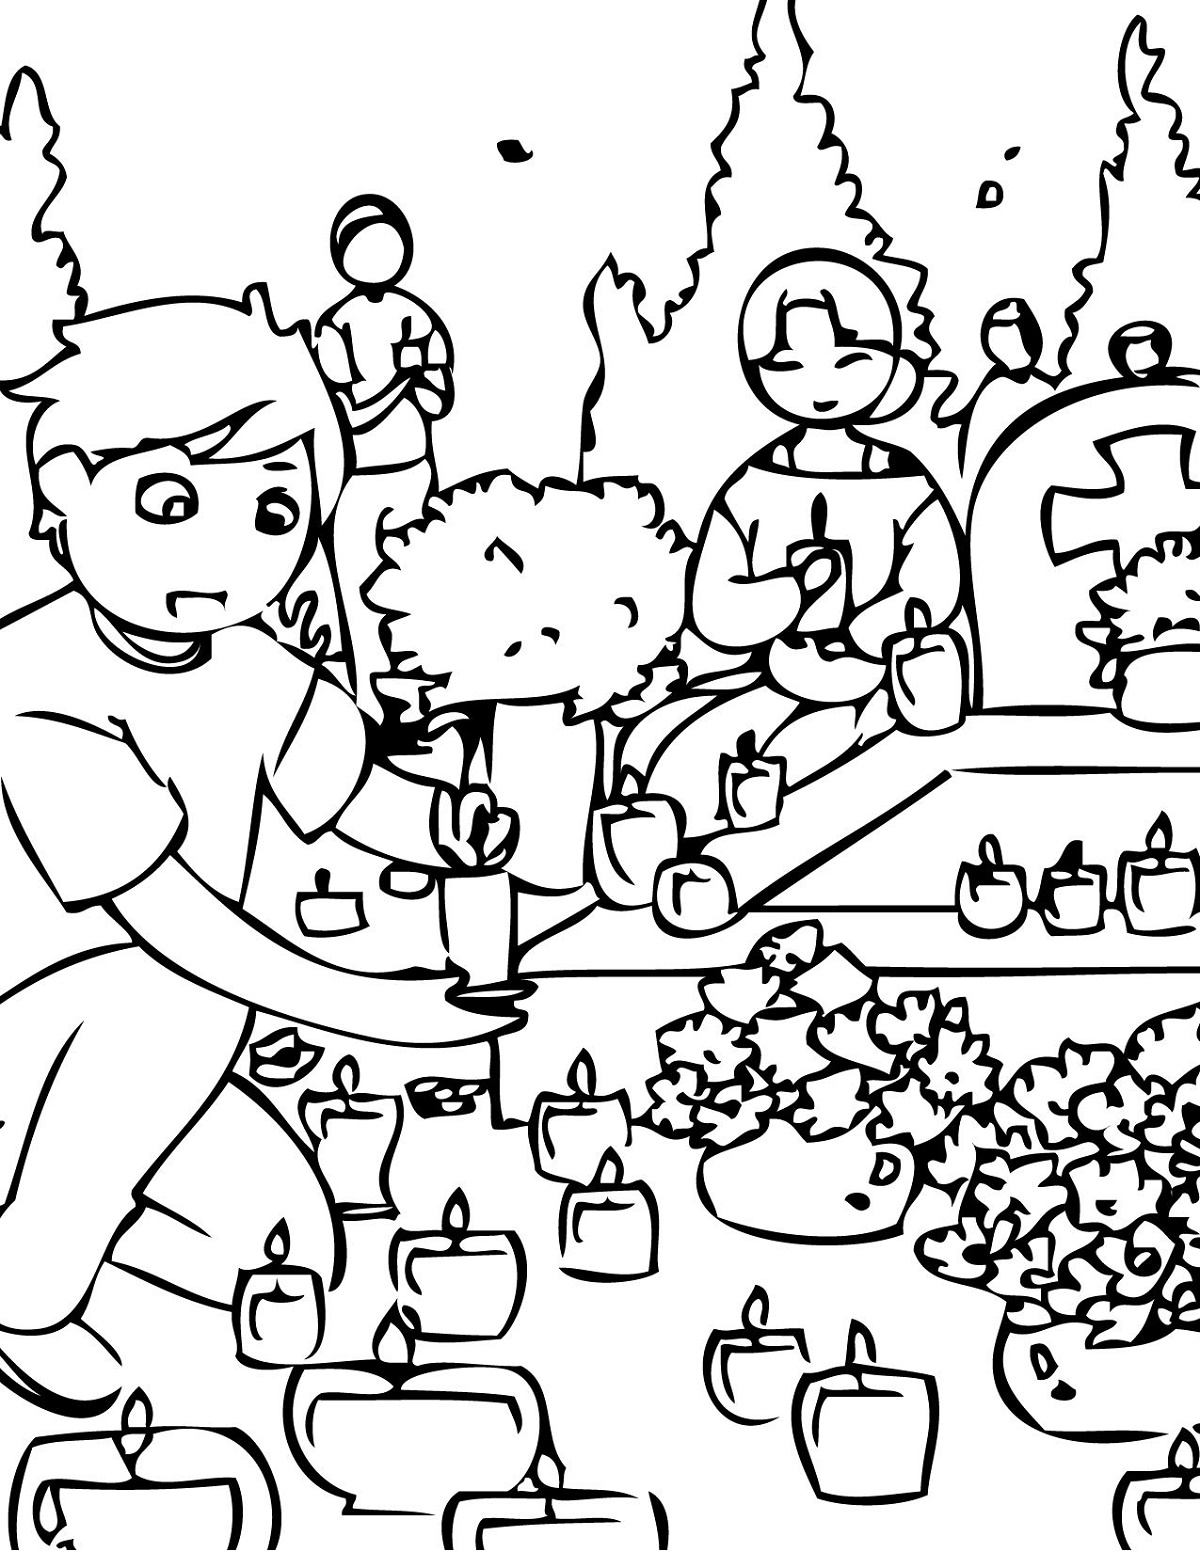 All Saints Day Coloring Pages To Print